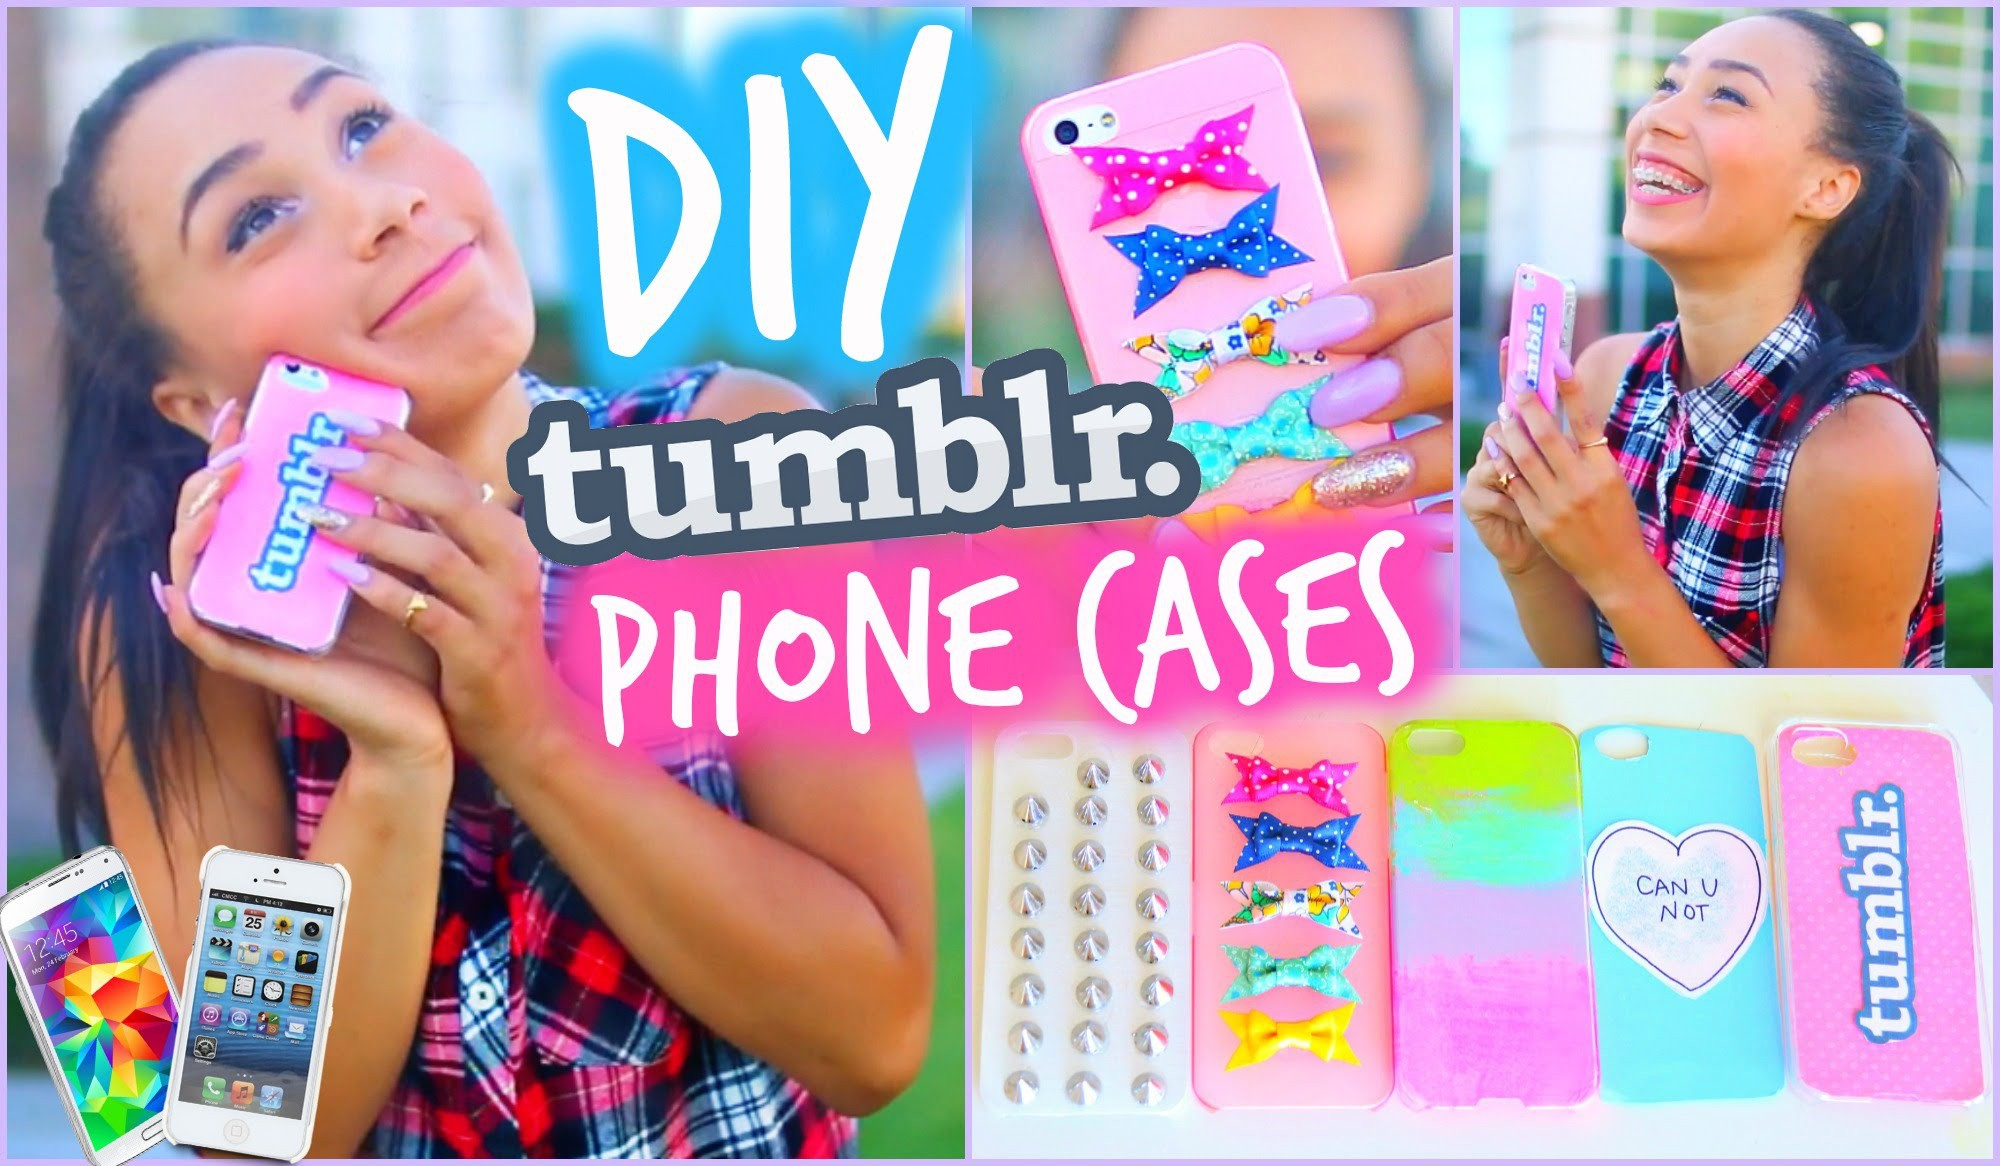 DIY 5 Easy Phone Cases (Studded, Ombre & More) | Tumblr Inspired